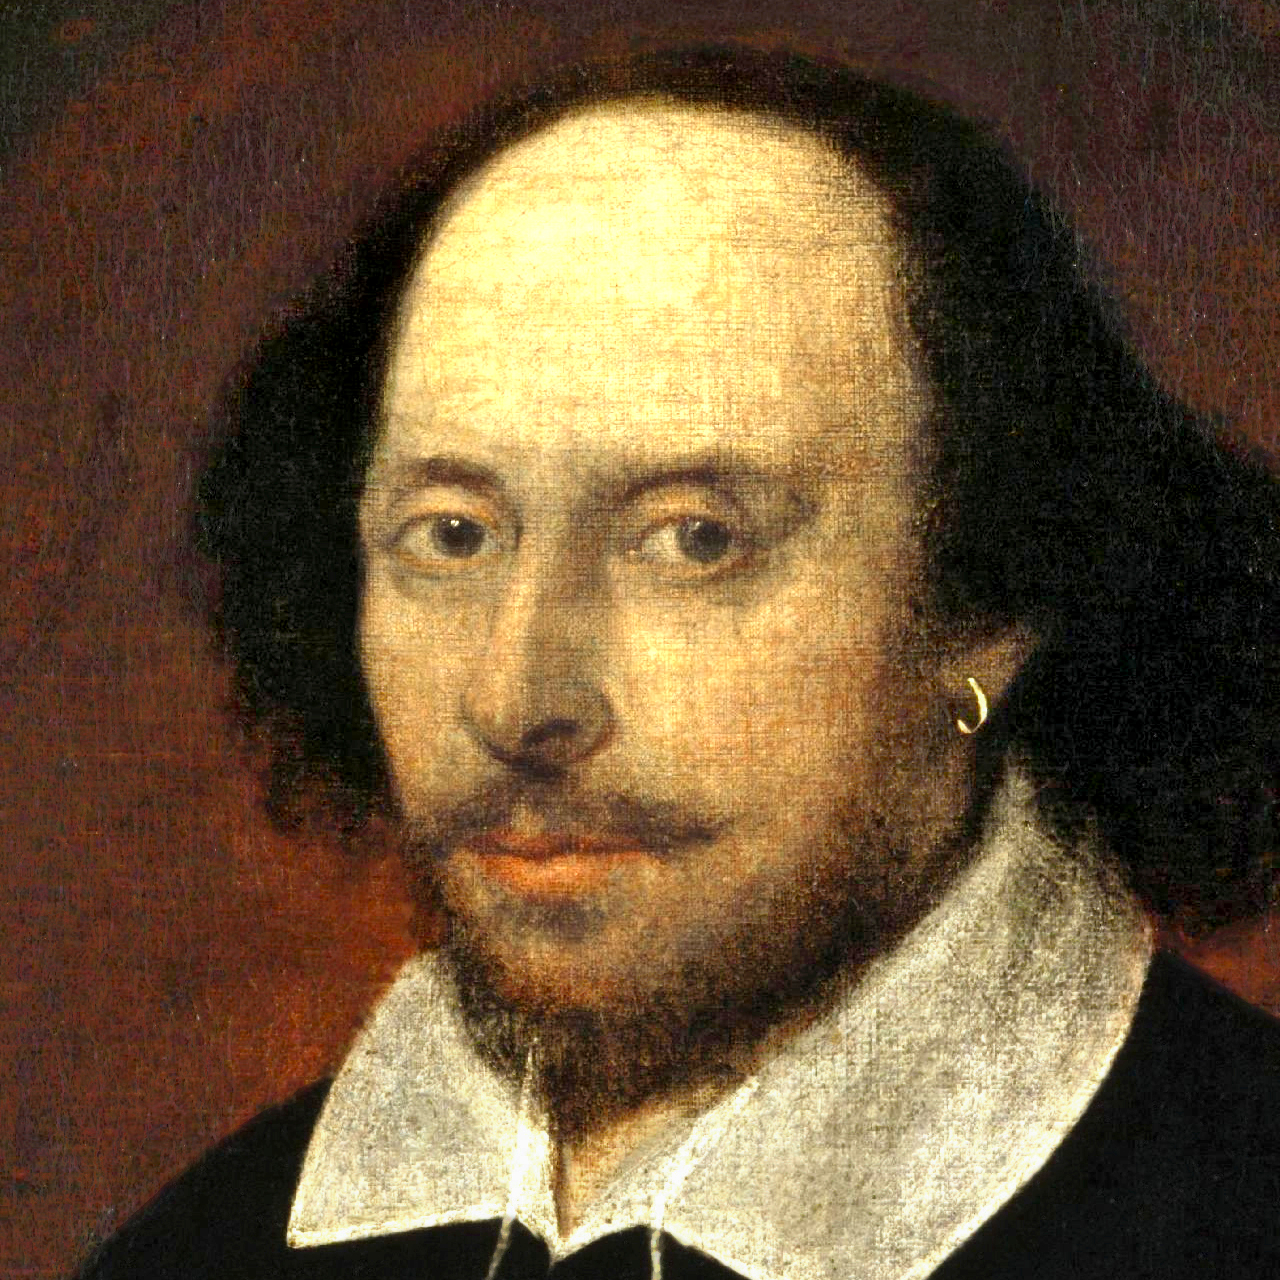 File:William Shakespeare sq.jpg - Wikimedia Commons